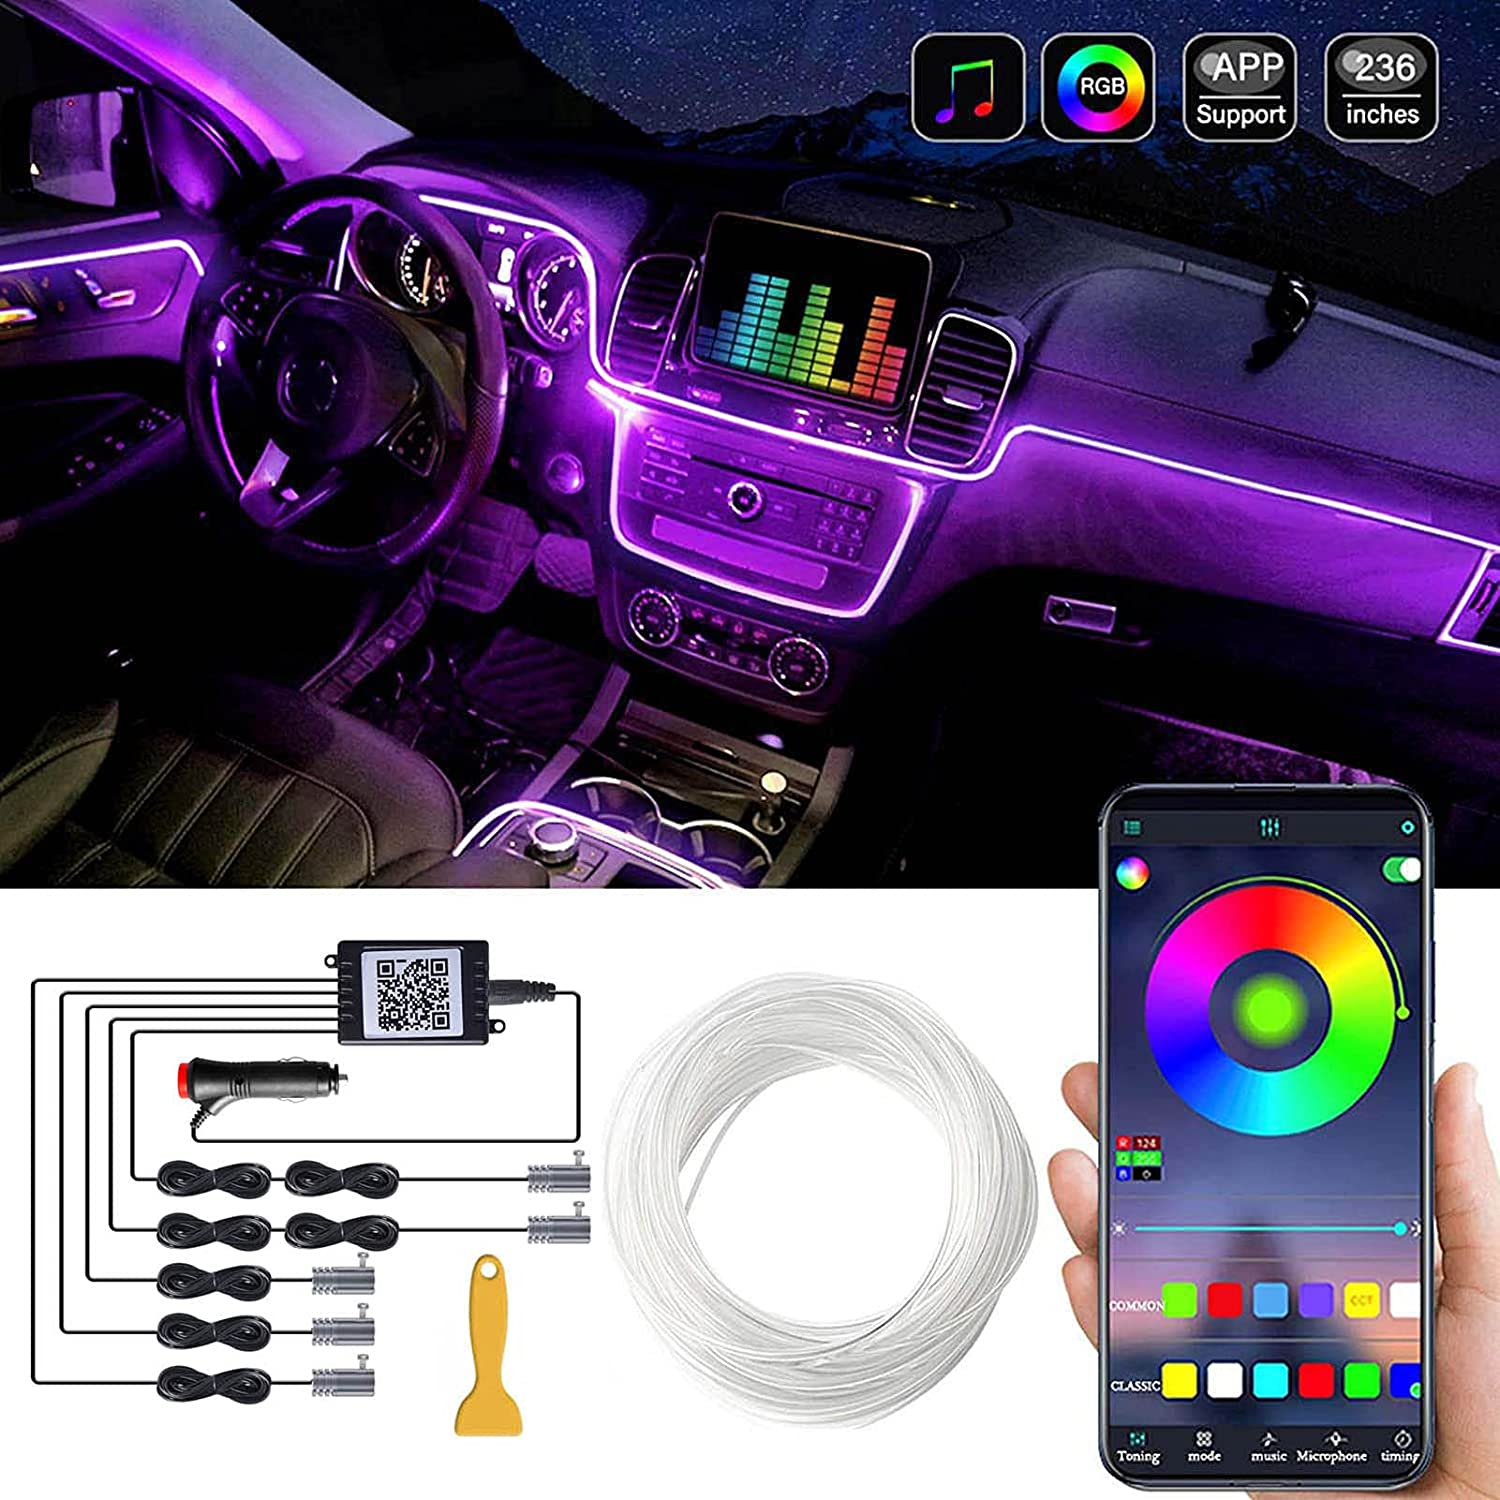 Car LED Interior Strip Light 16 Max 59% OFF Max 77% OFF Million 1 in 236 Colors 5 with